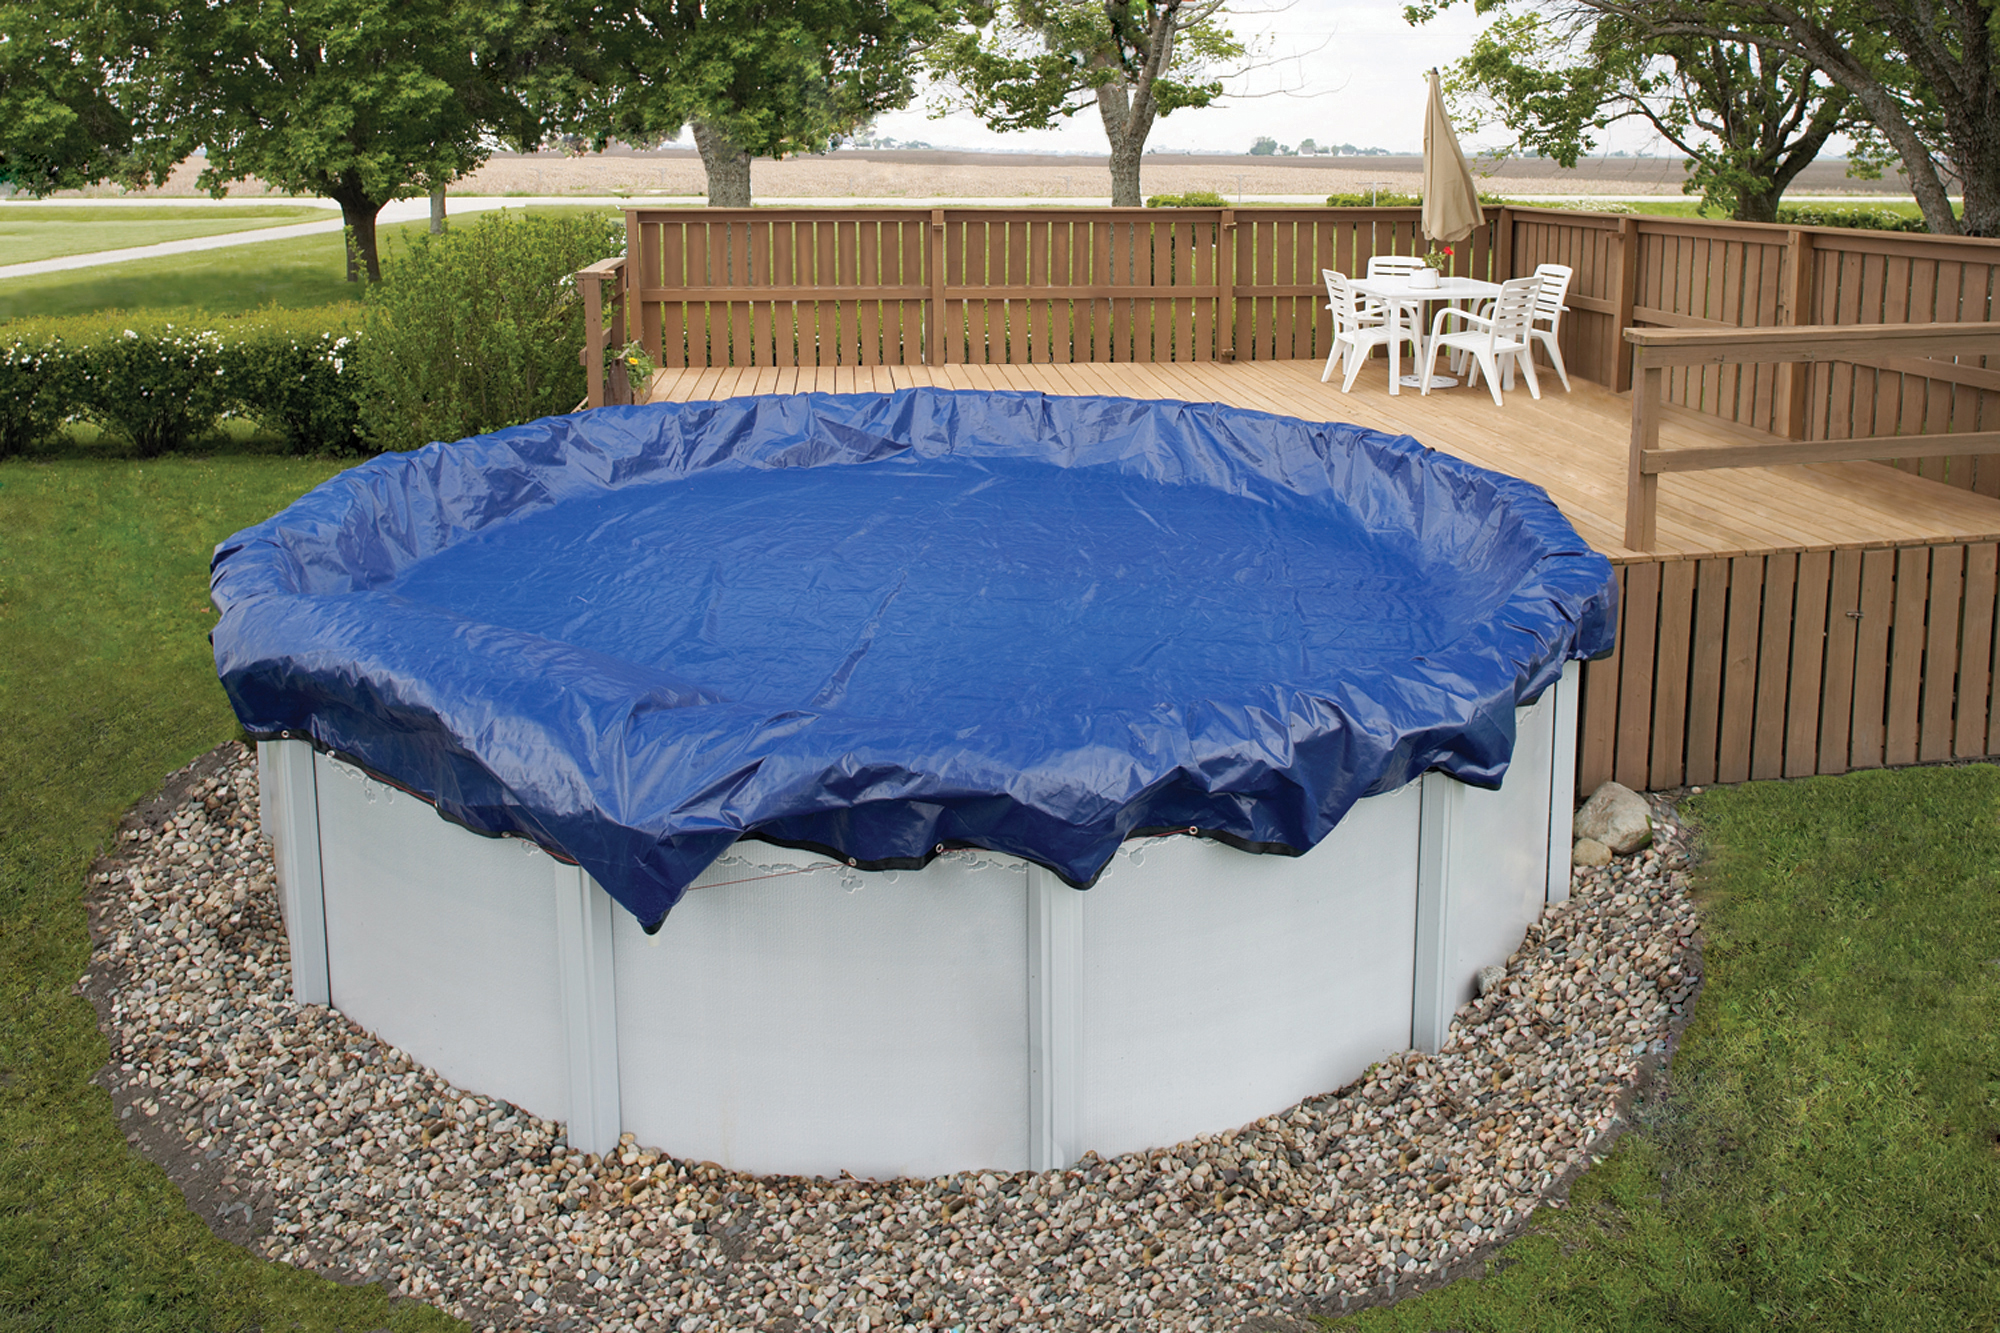 Blue Wave Gold 15-Year 18-ft Round Above Ground Pool Winter Cover by Blue Wave